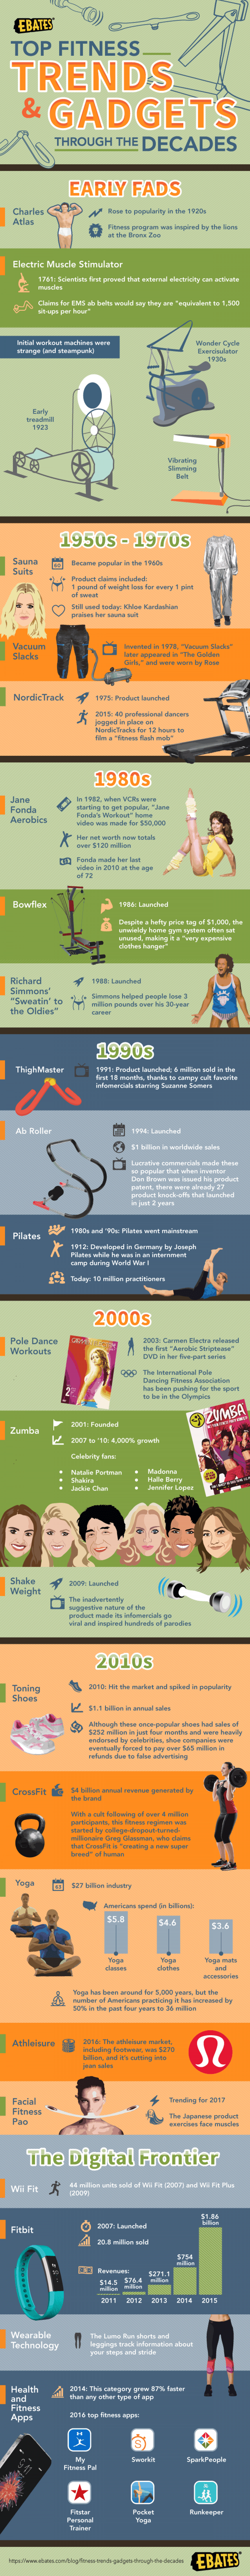 Top Fitness Trends and Gadgets Through the Decades Infographic